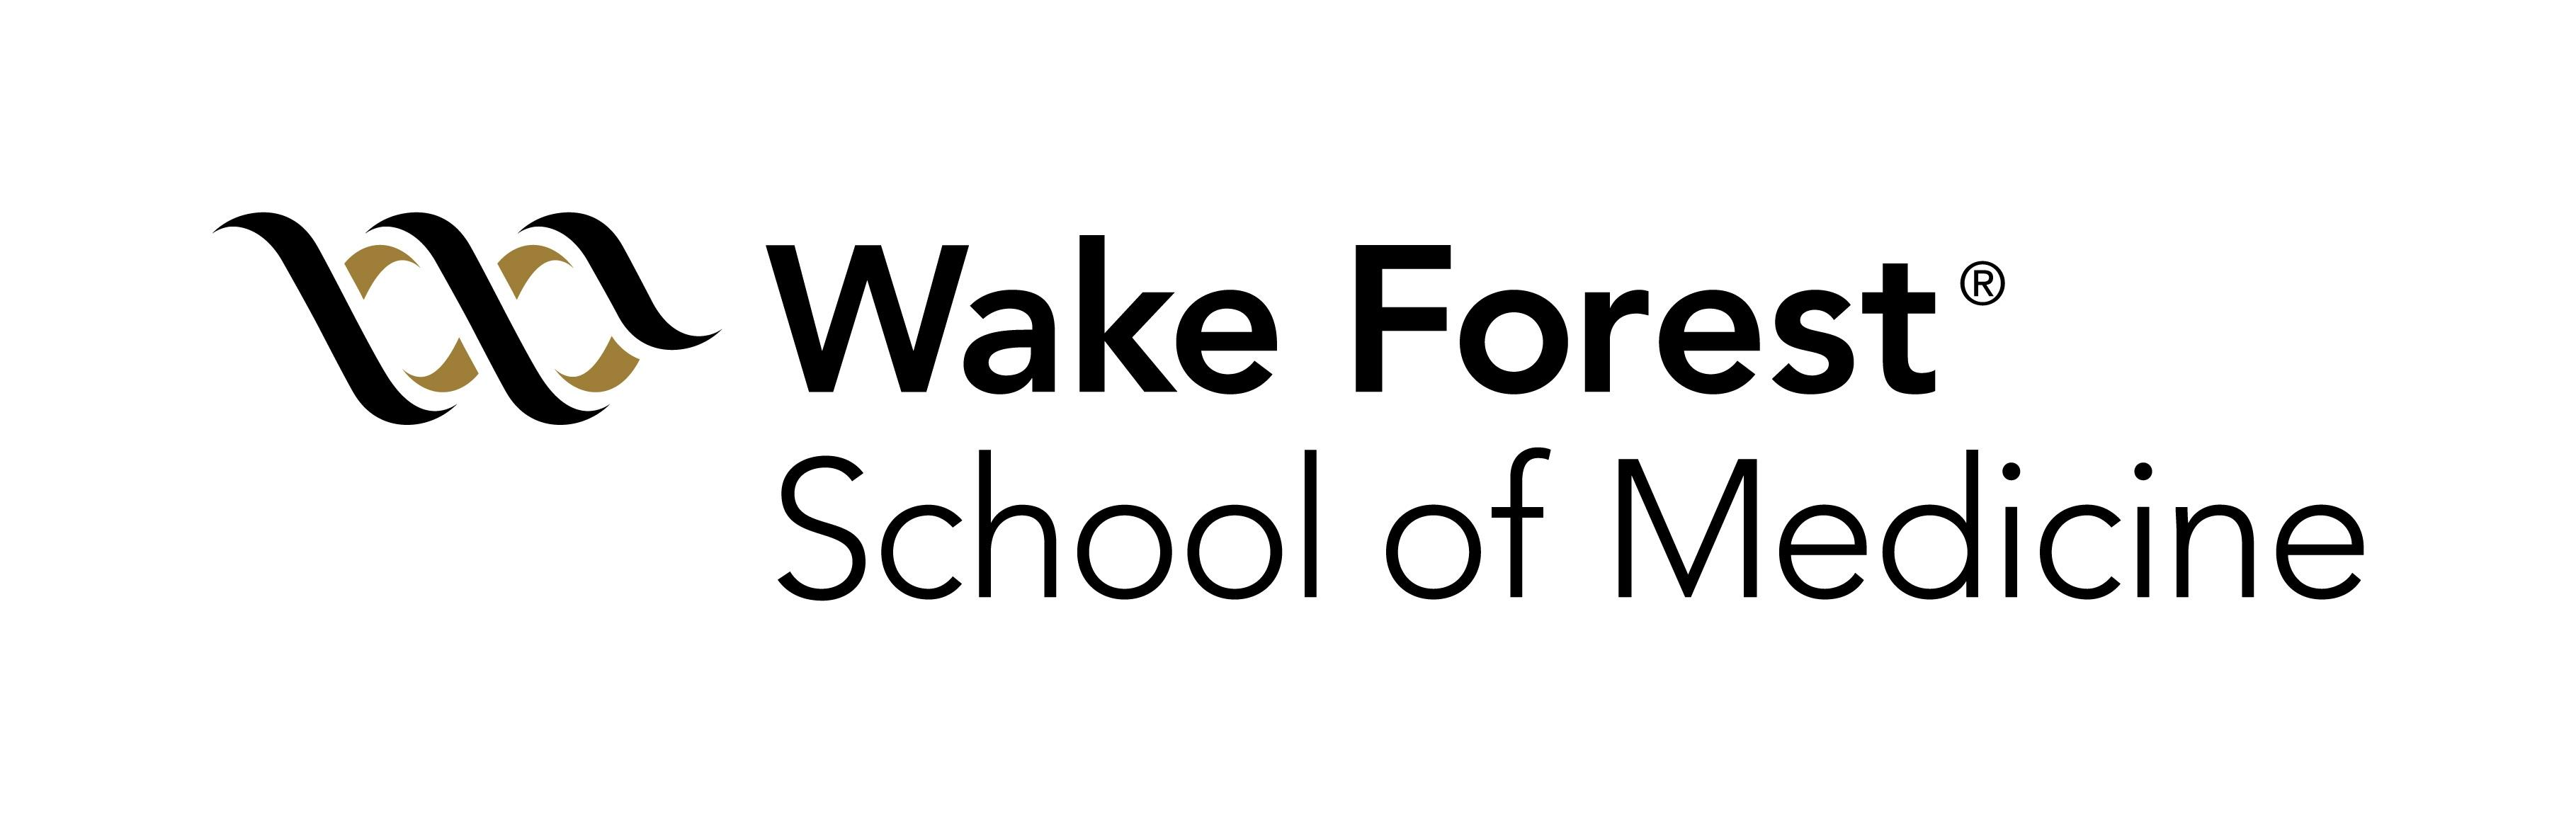 Clinical Geneticist - Wake Forest School of Medicine